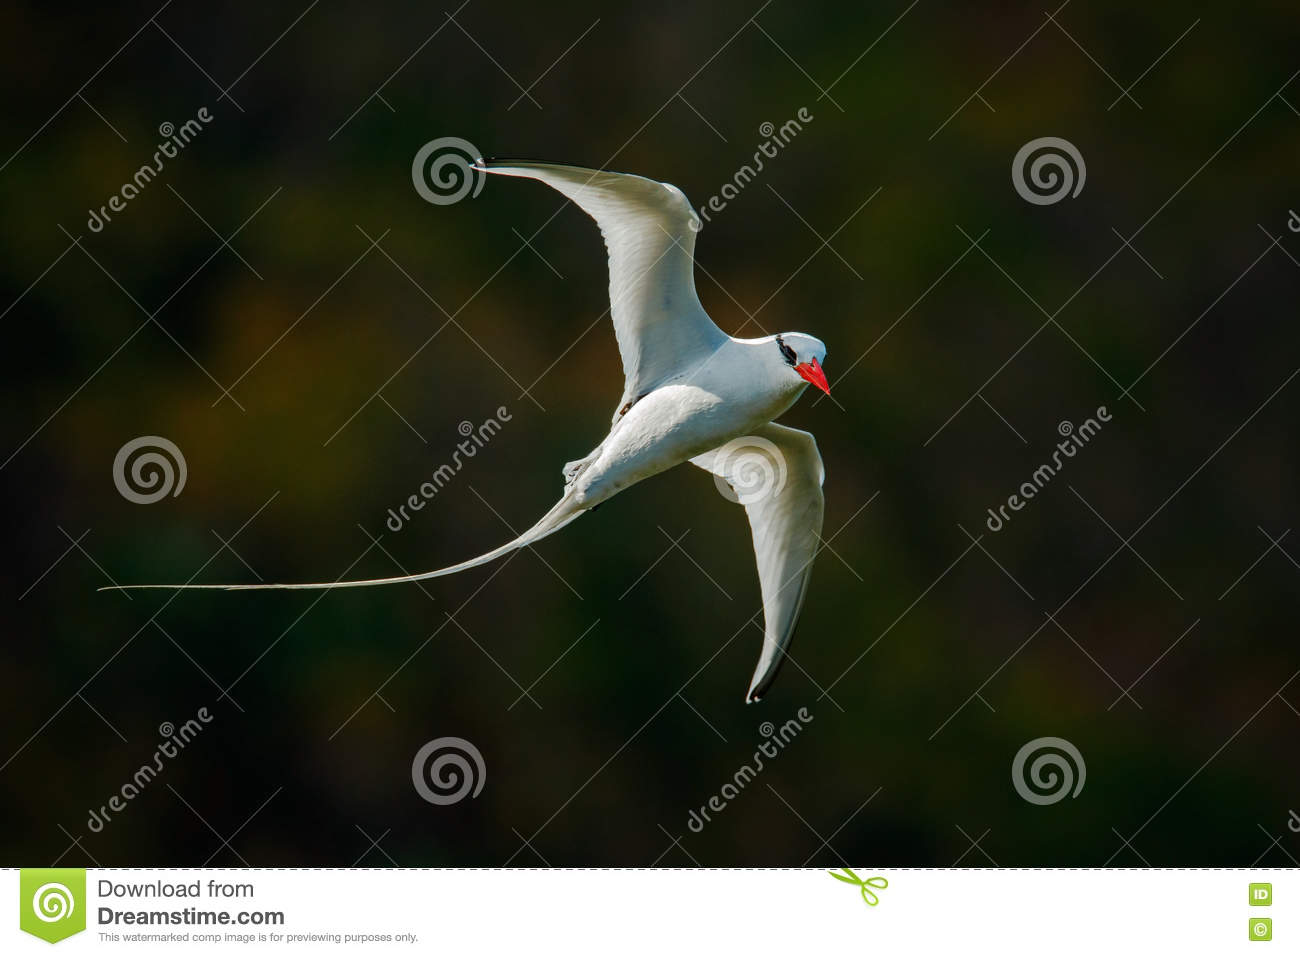 Flying Tropicbird with green forest background. Red-billed Tropicbird, Phaethon aethereus, rare bird from the Caribbean. White